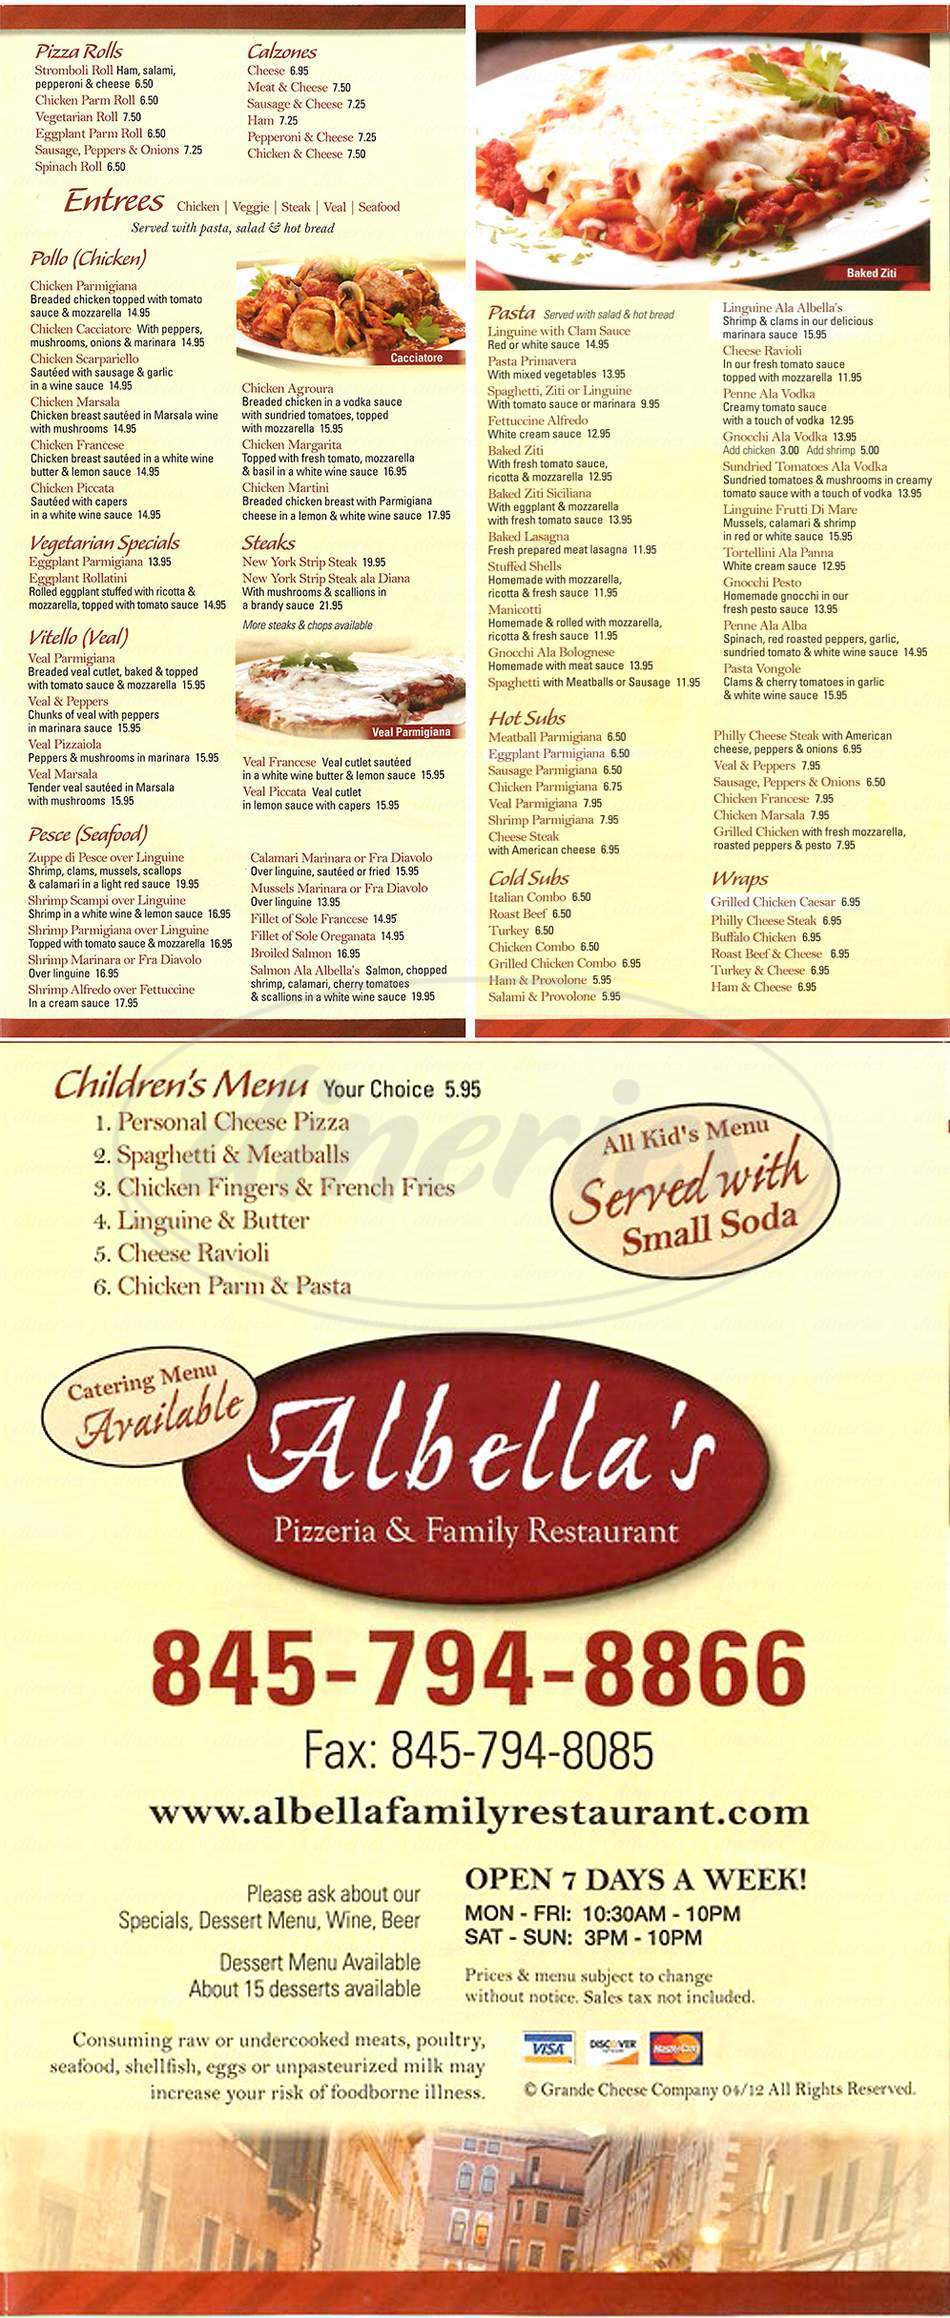 menu for Albella Pizza & Family Restaurant